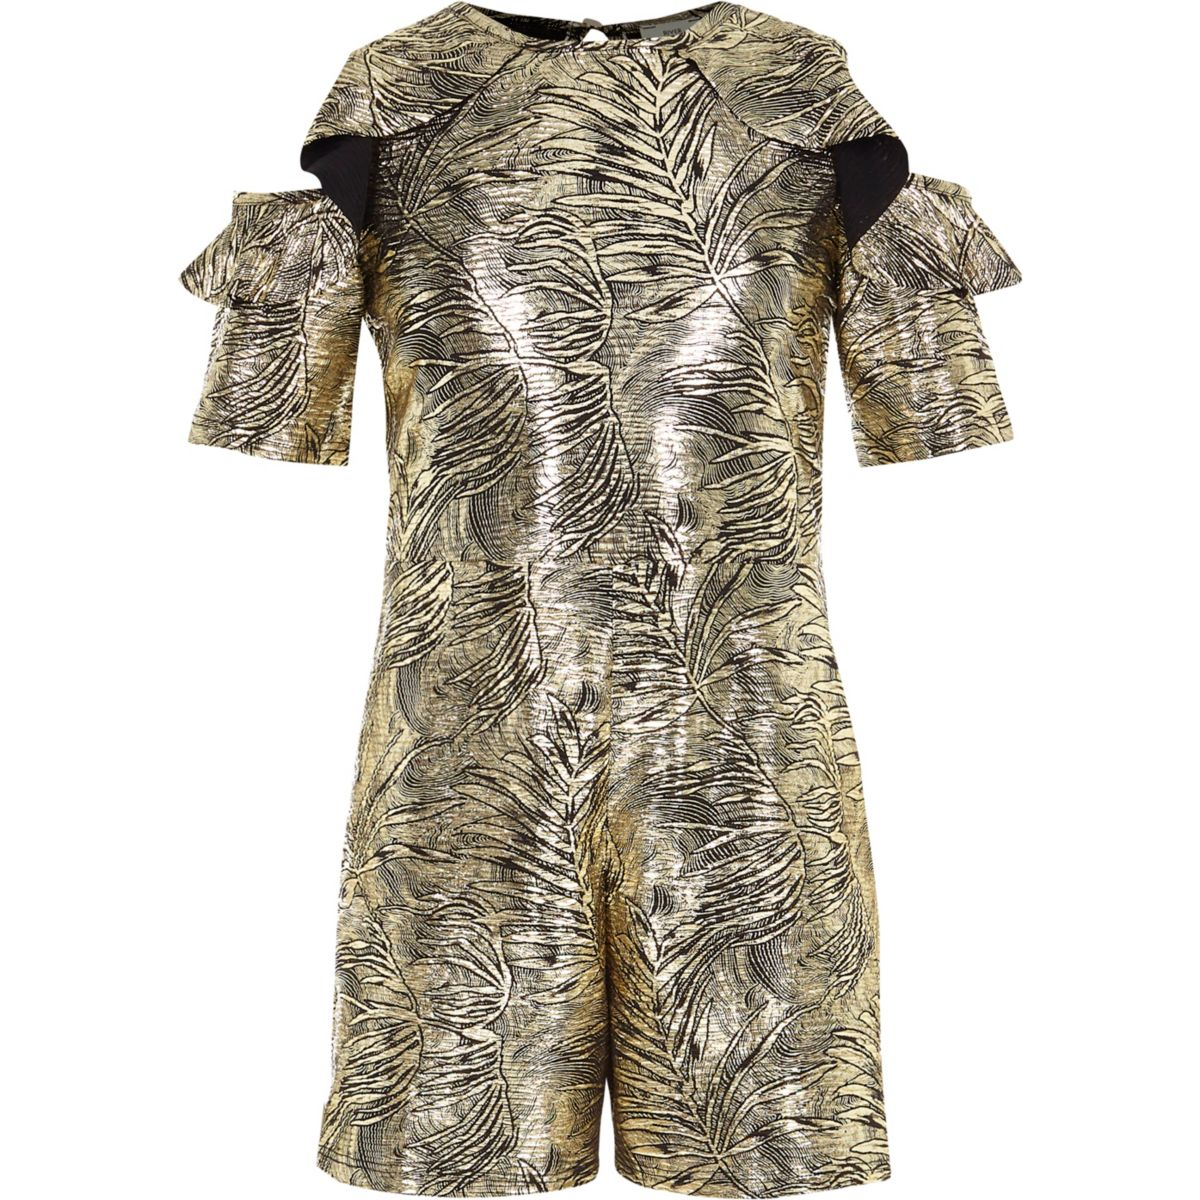 Girls gold metallic cold shoulder playsuit